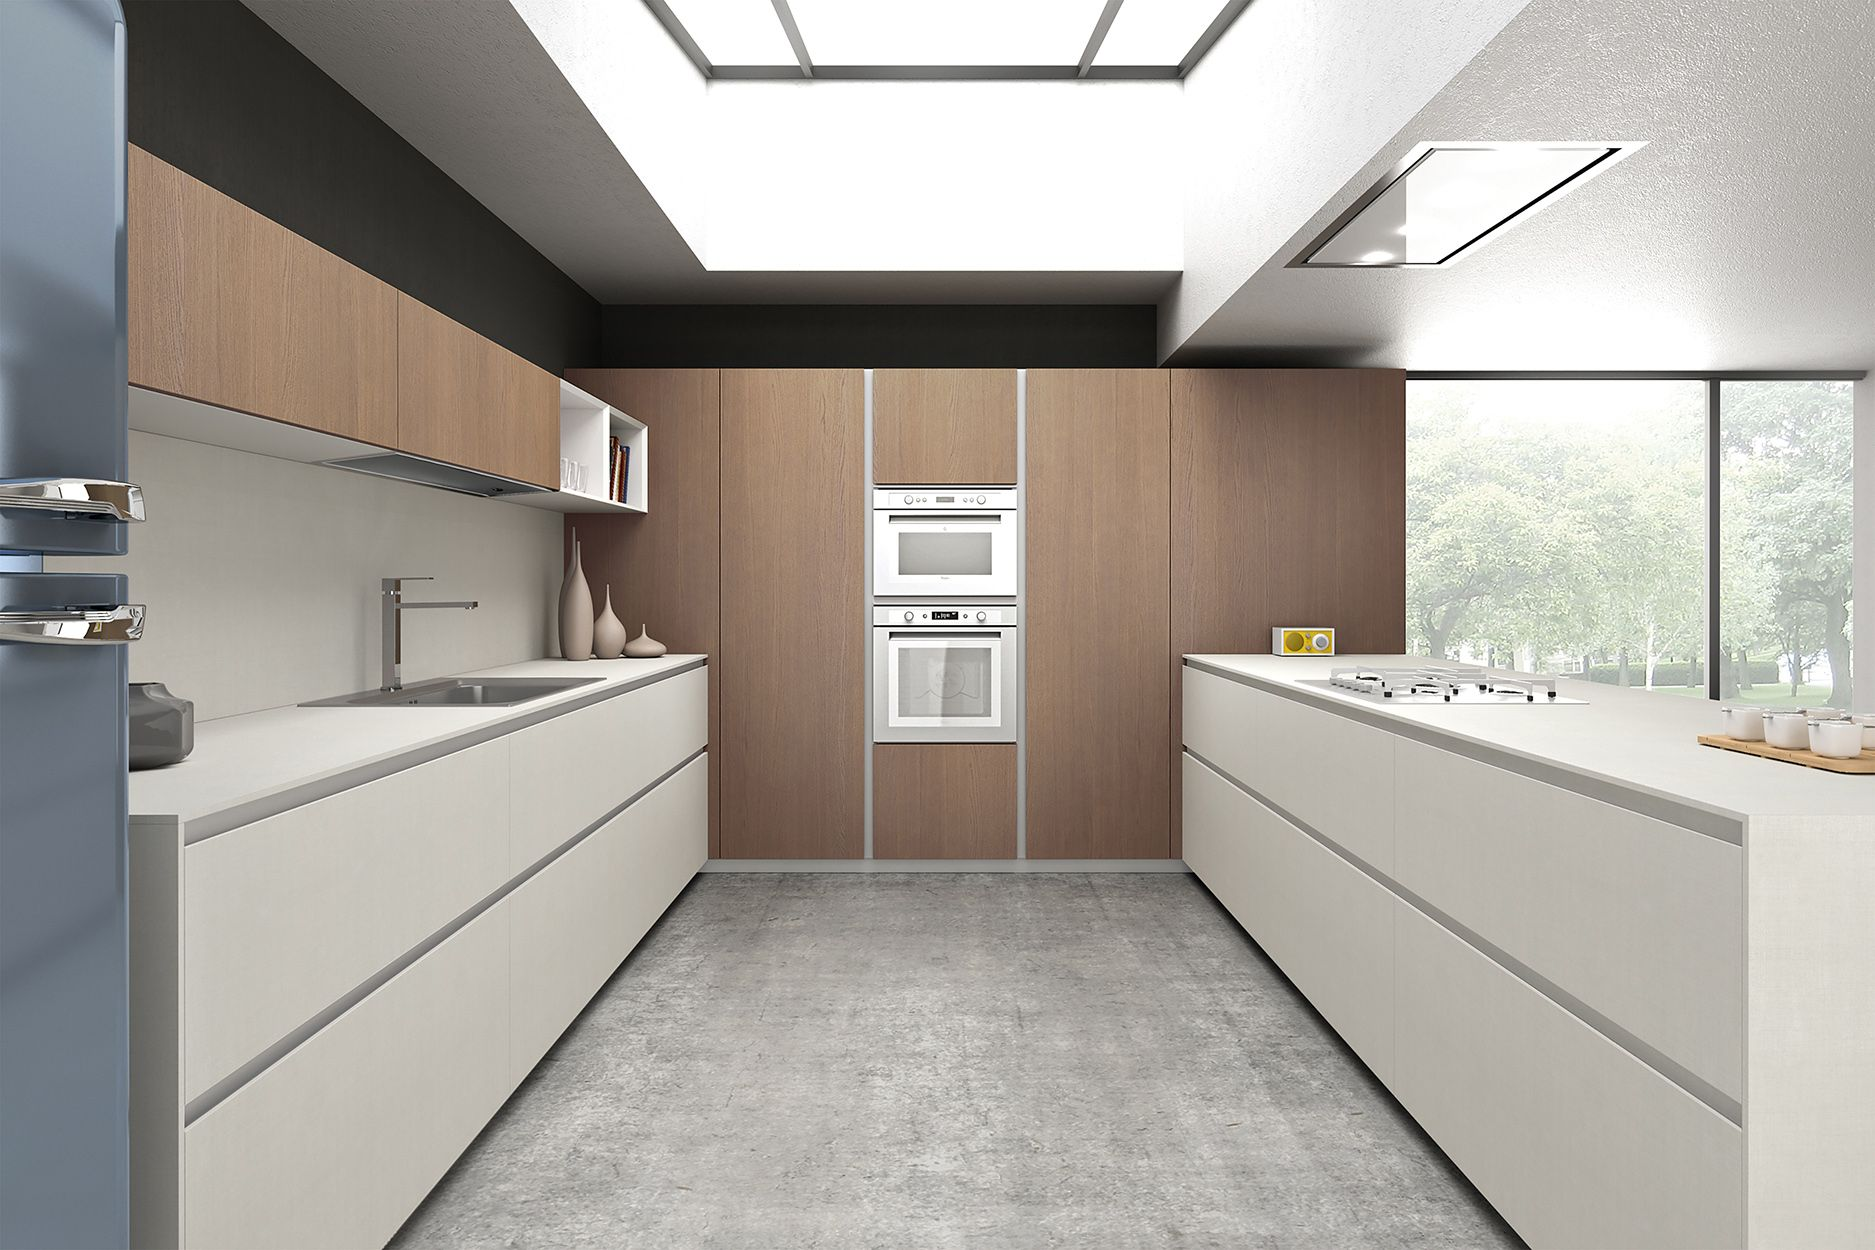 armony cucine - model t16   model_kitchens with grip grooves